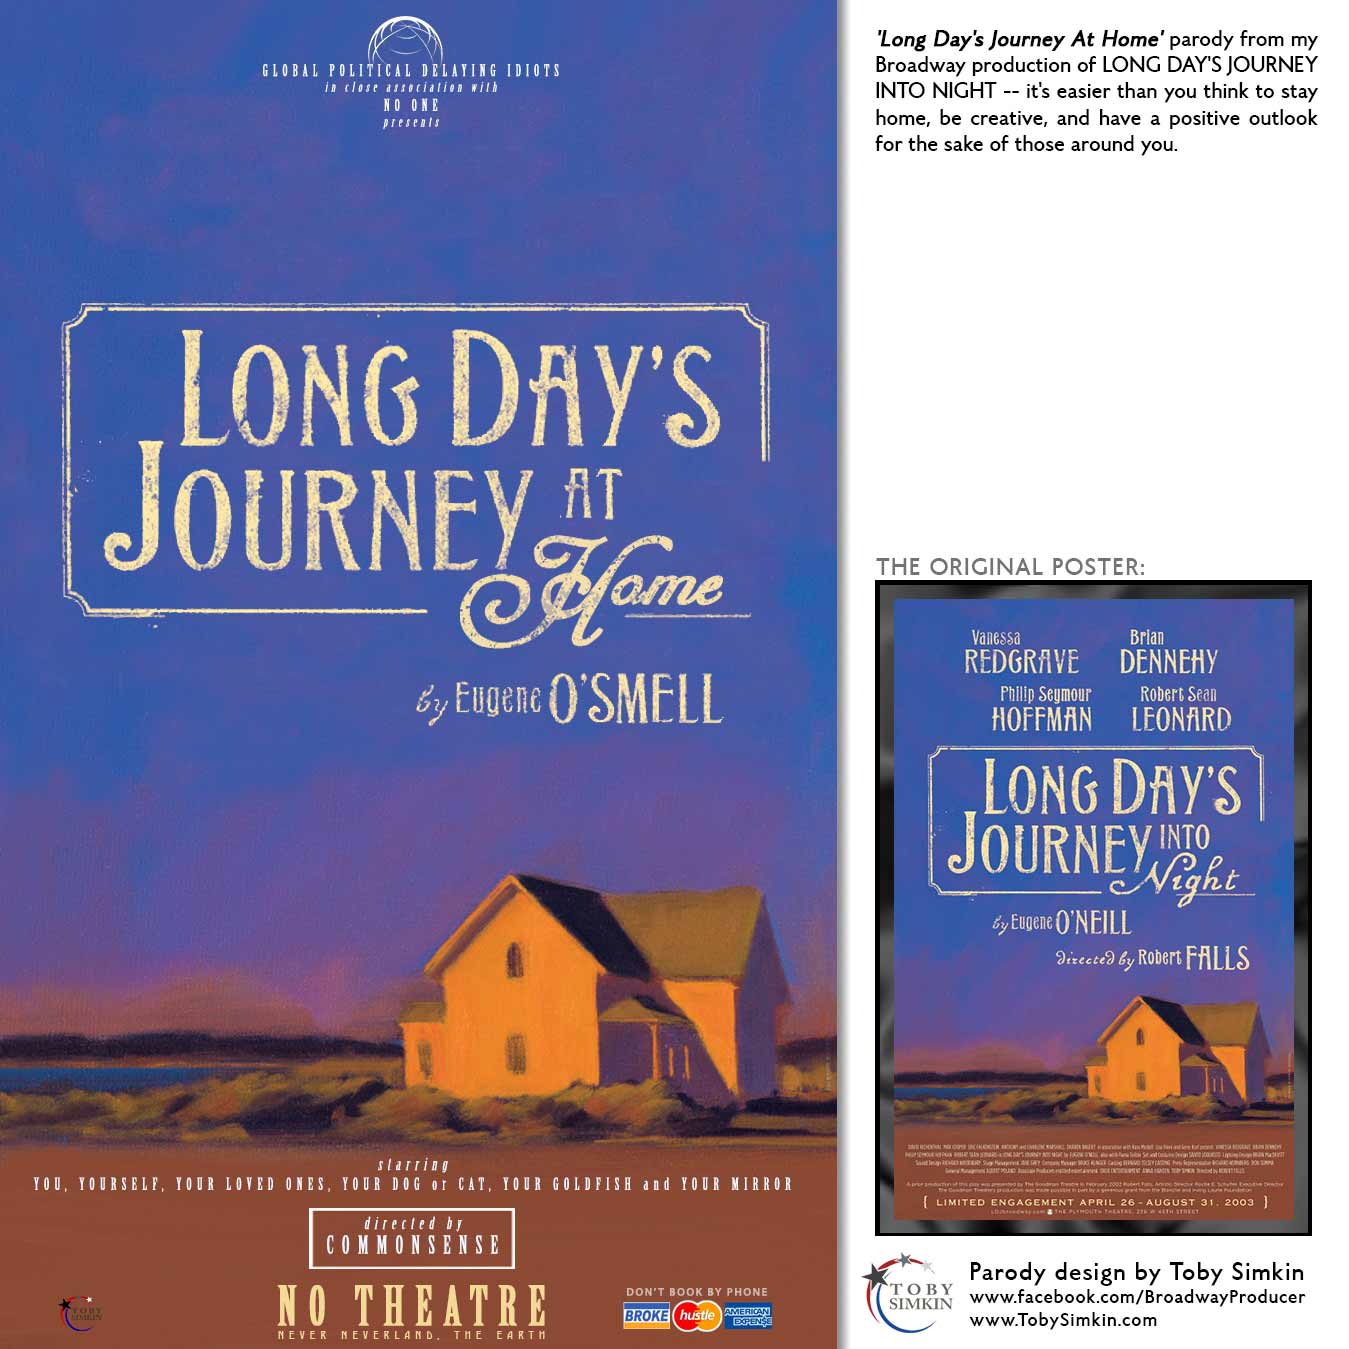 'Long Day's Journey At Home' parody from my Broadway production of LONG DAY'S JOURNEY INTO NIGHT